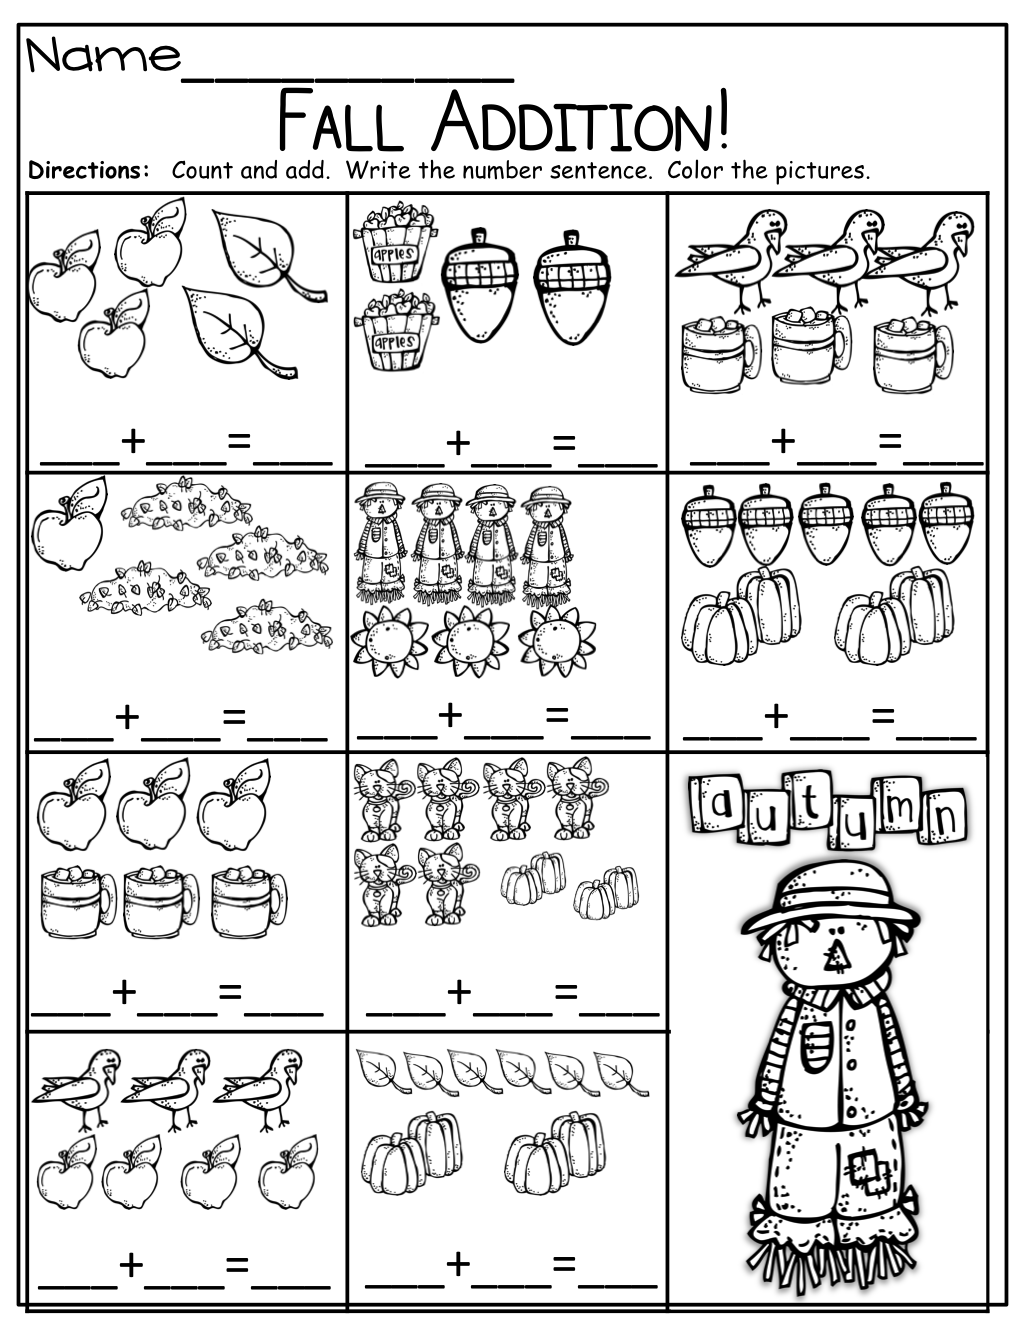 simple addition sentences for fall kinderland collaborative kindergarten math worksheets. Black Bedroom Furniture Sets. Home Design Ideas